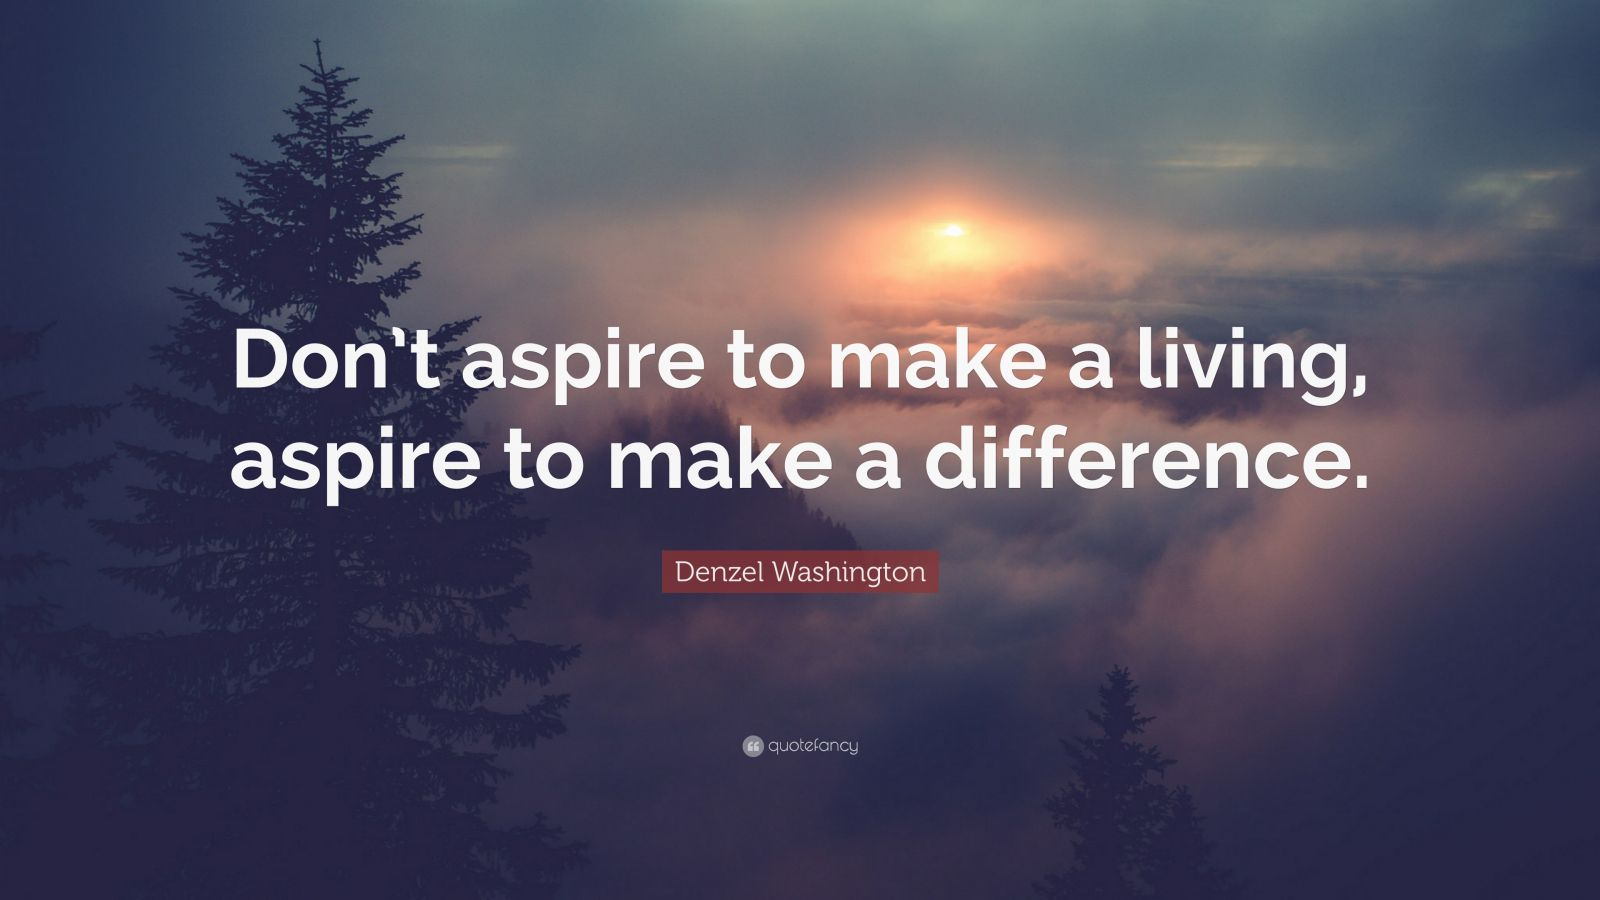 We Heart It Wallpaper Quotes Denzel Washington Quote Don T Aspire To Make A Living